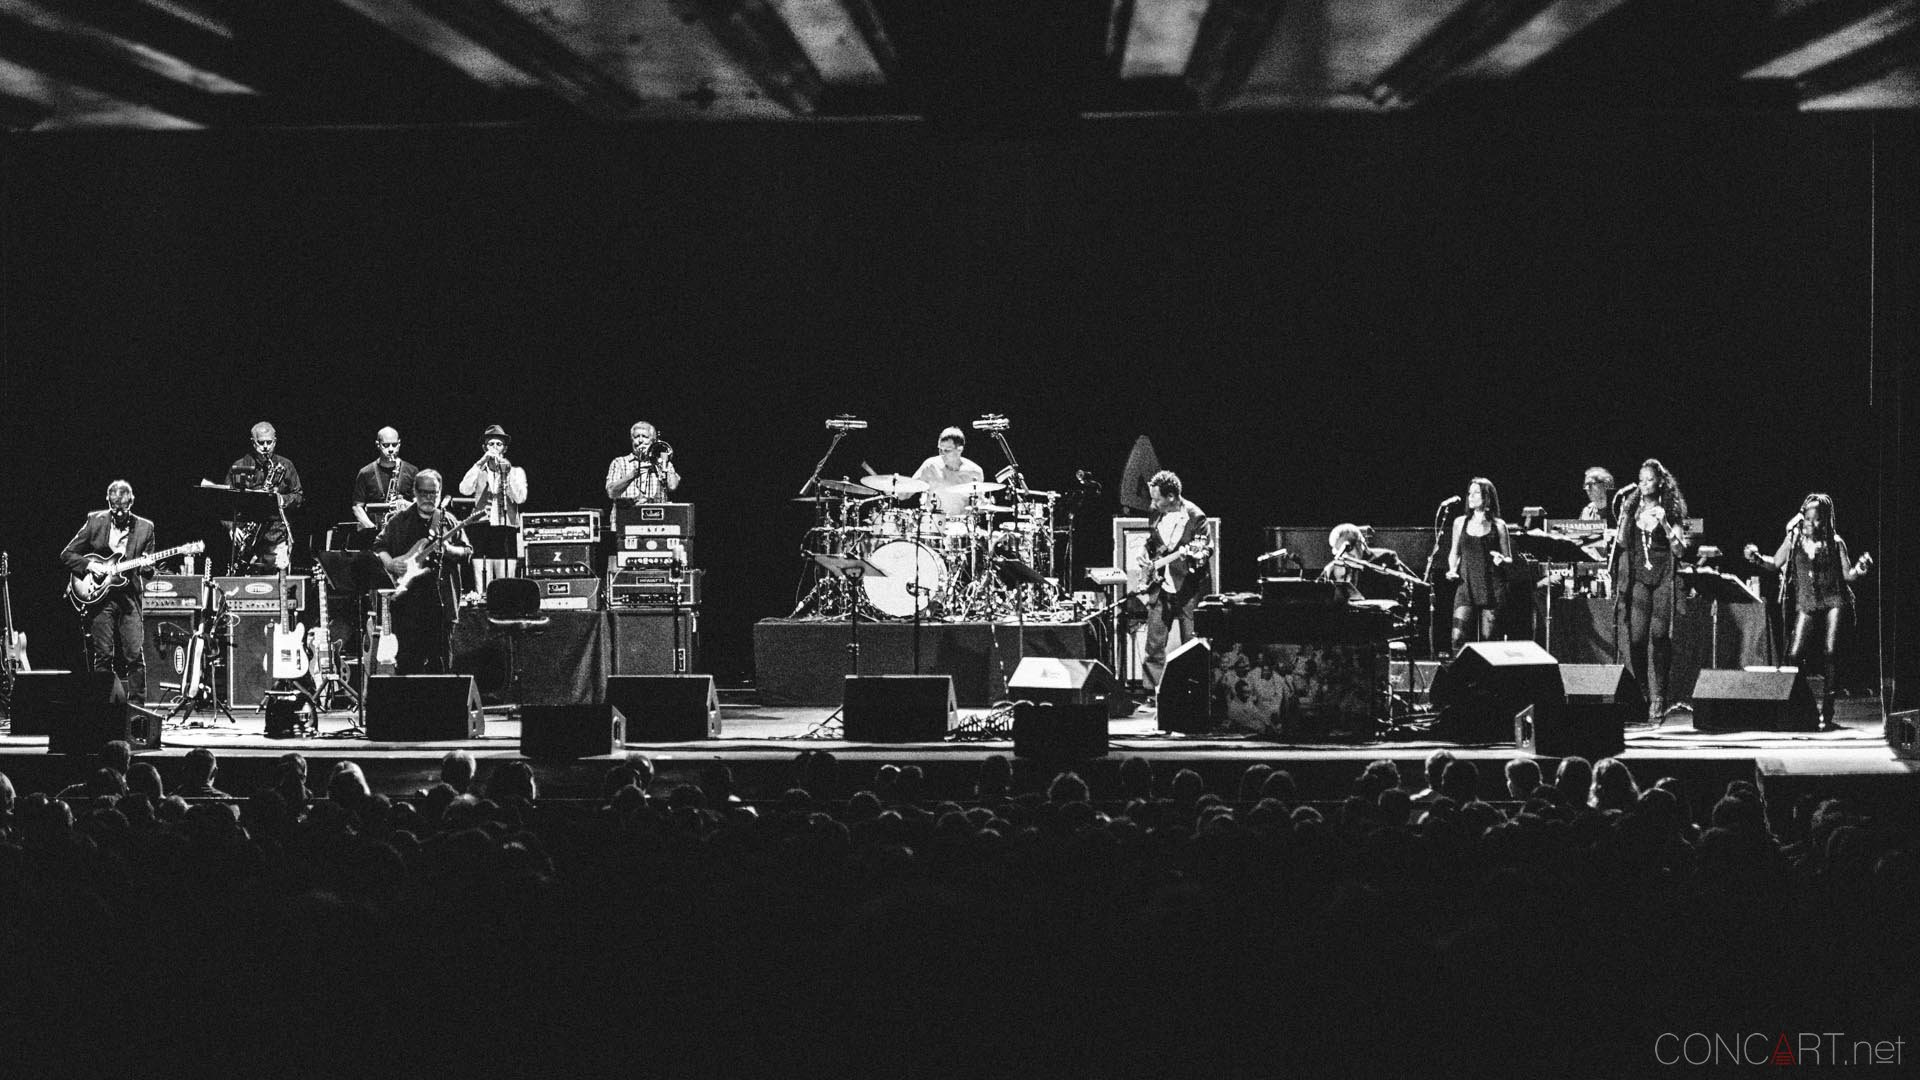 steely_dan_live_old_national_murat_theatre_indianapolis_2013-09